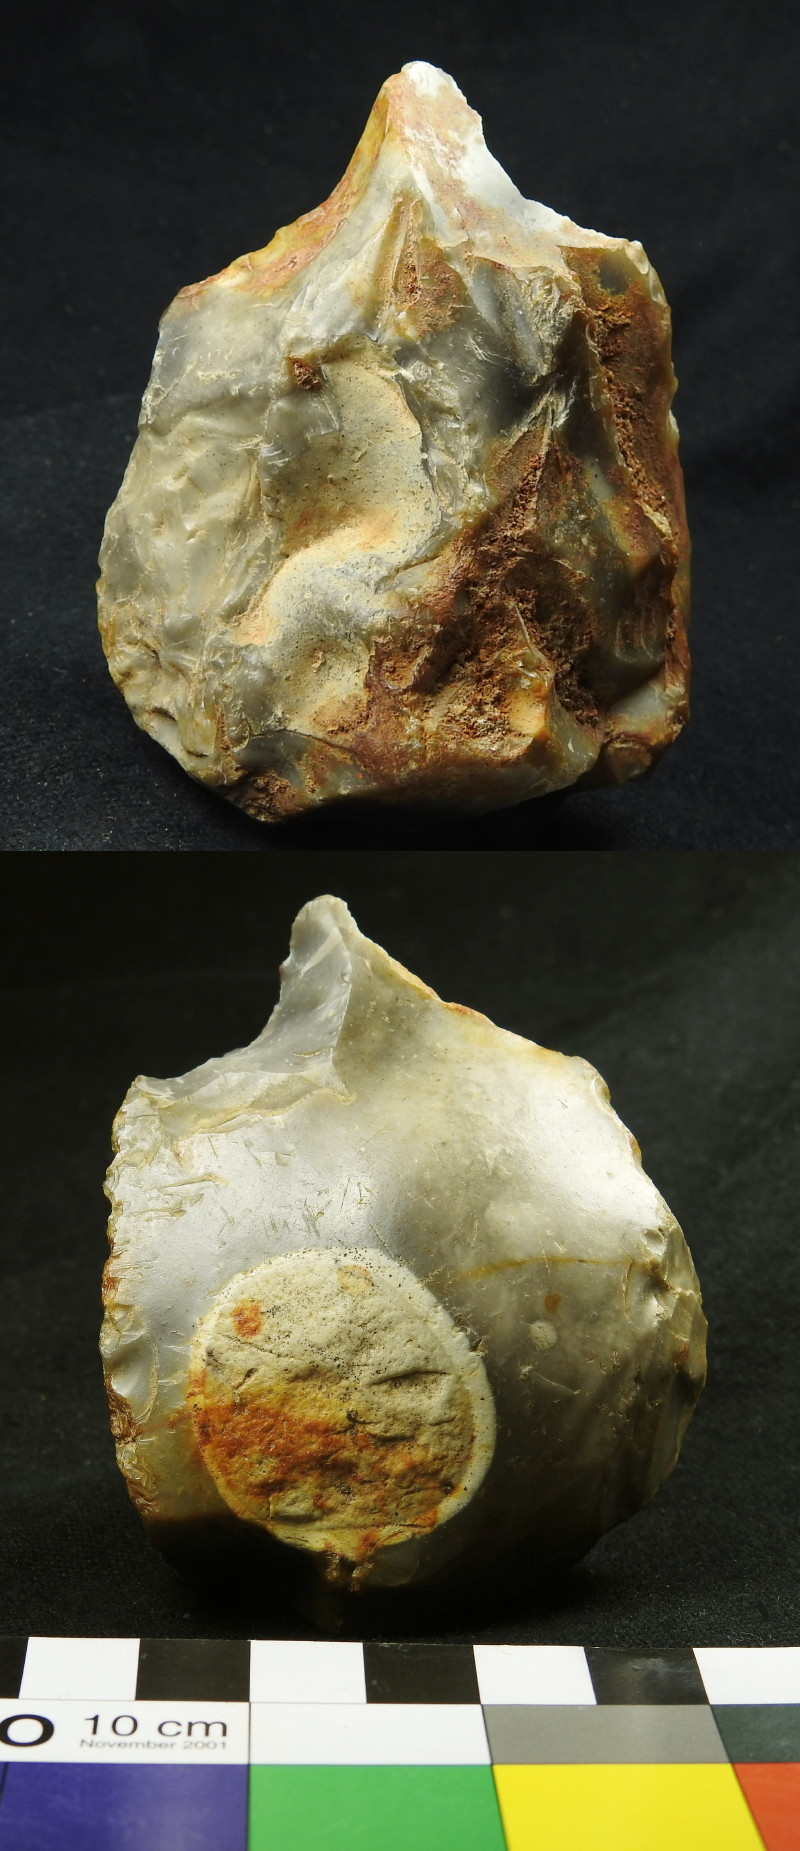 Palaeolithic Flint Pick, Groß Pampau, Northern Germany